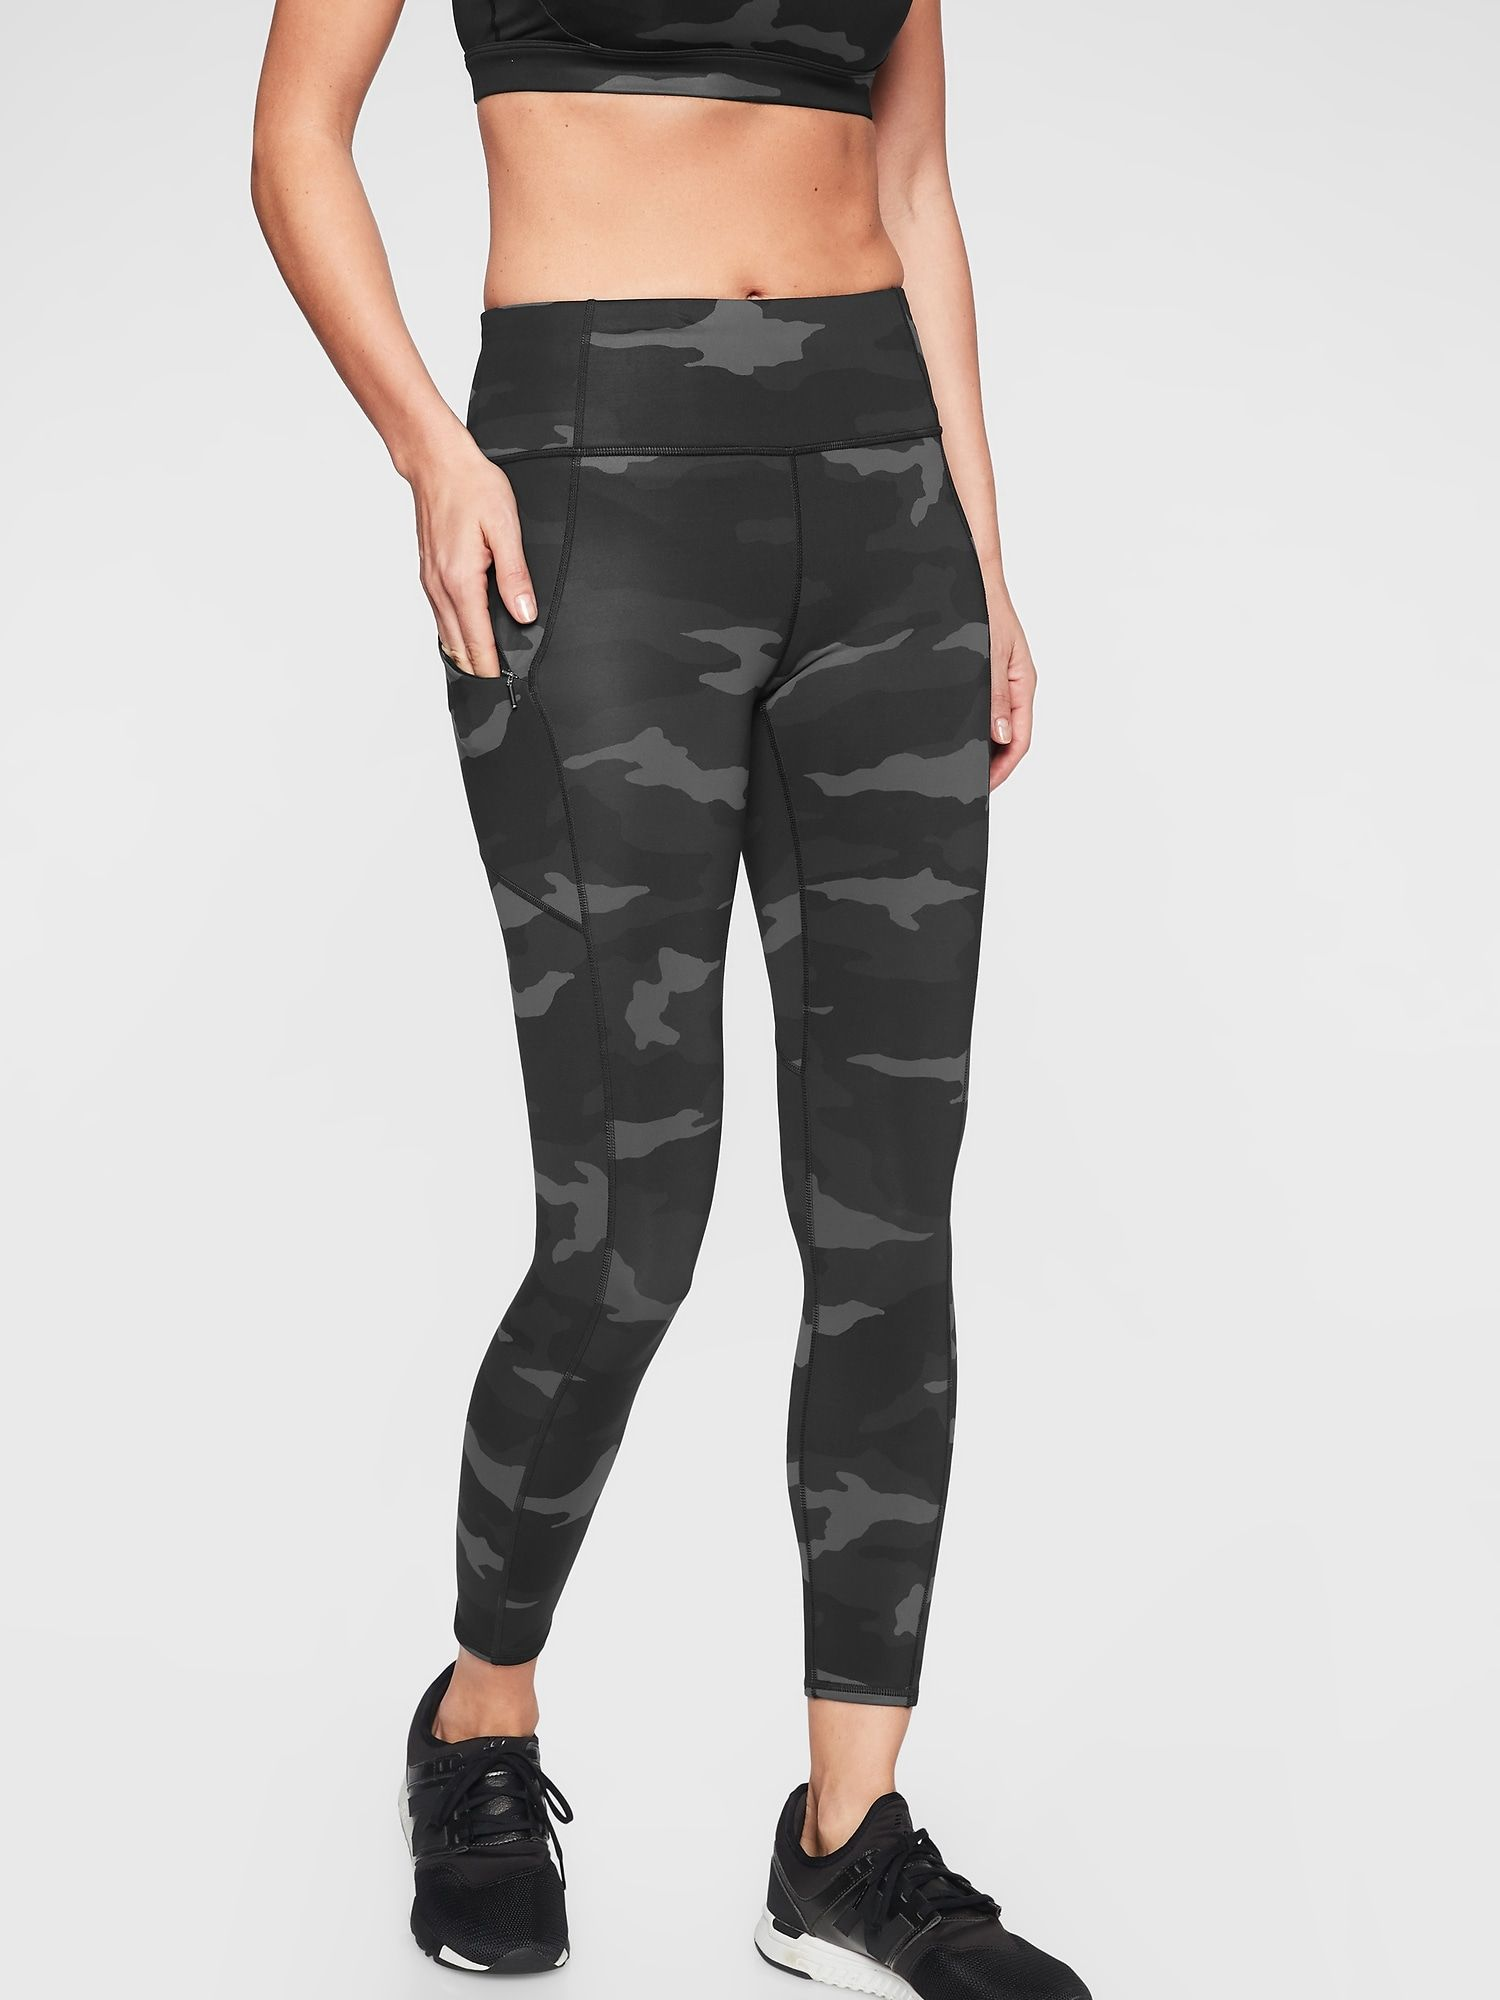 Camo Contender 7 8 Tight In Powerlift Exercise Bottoms In 2019 Camo Leggings Tights Tight Leggings